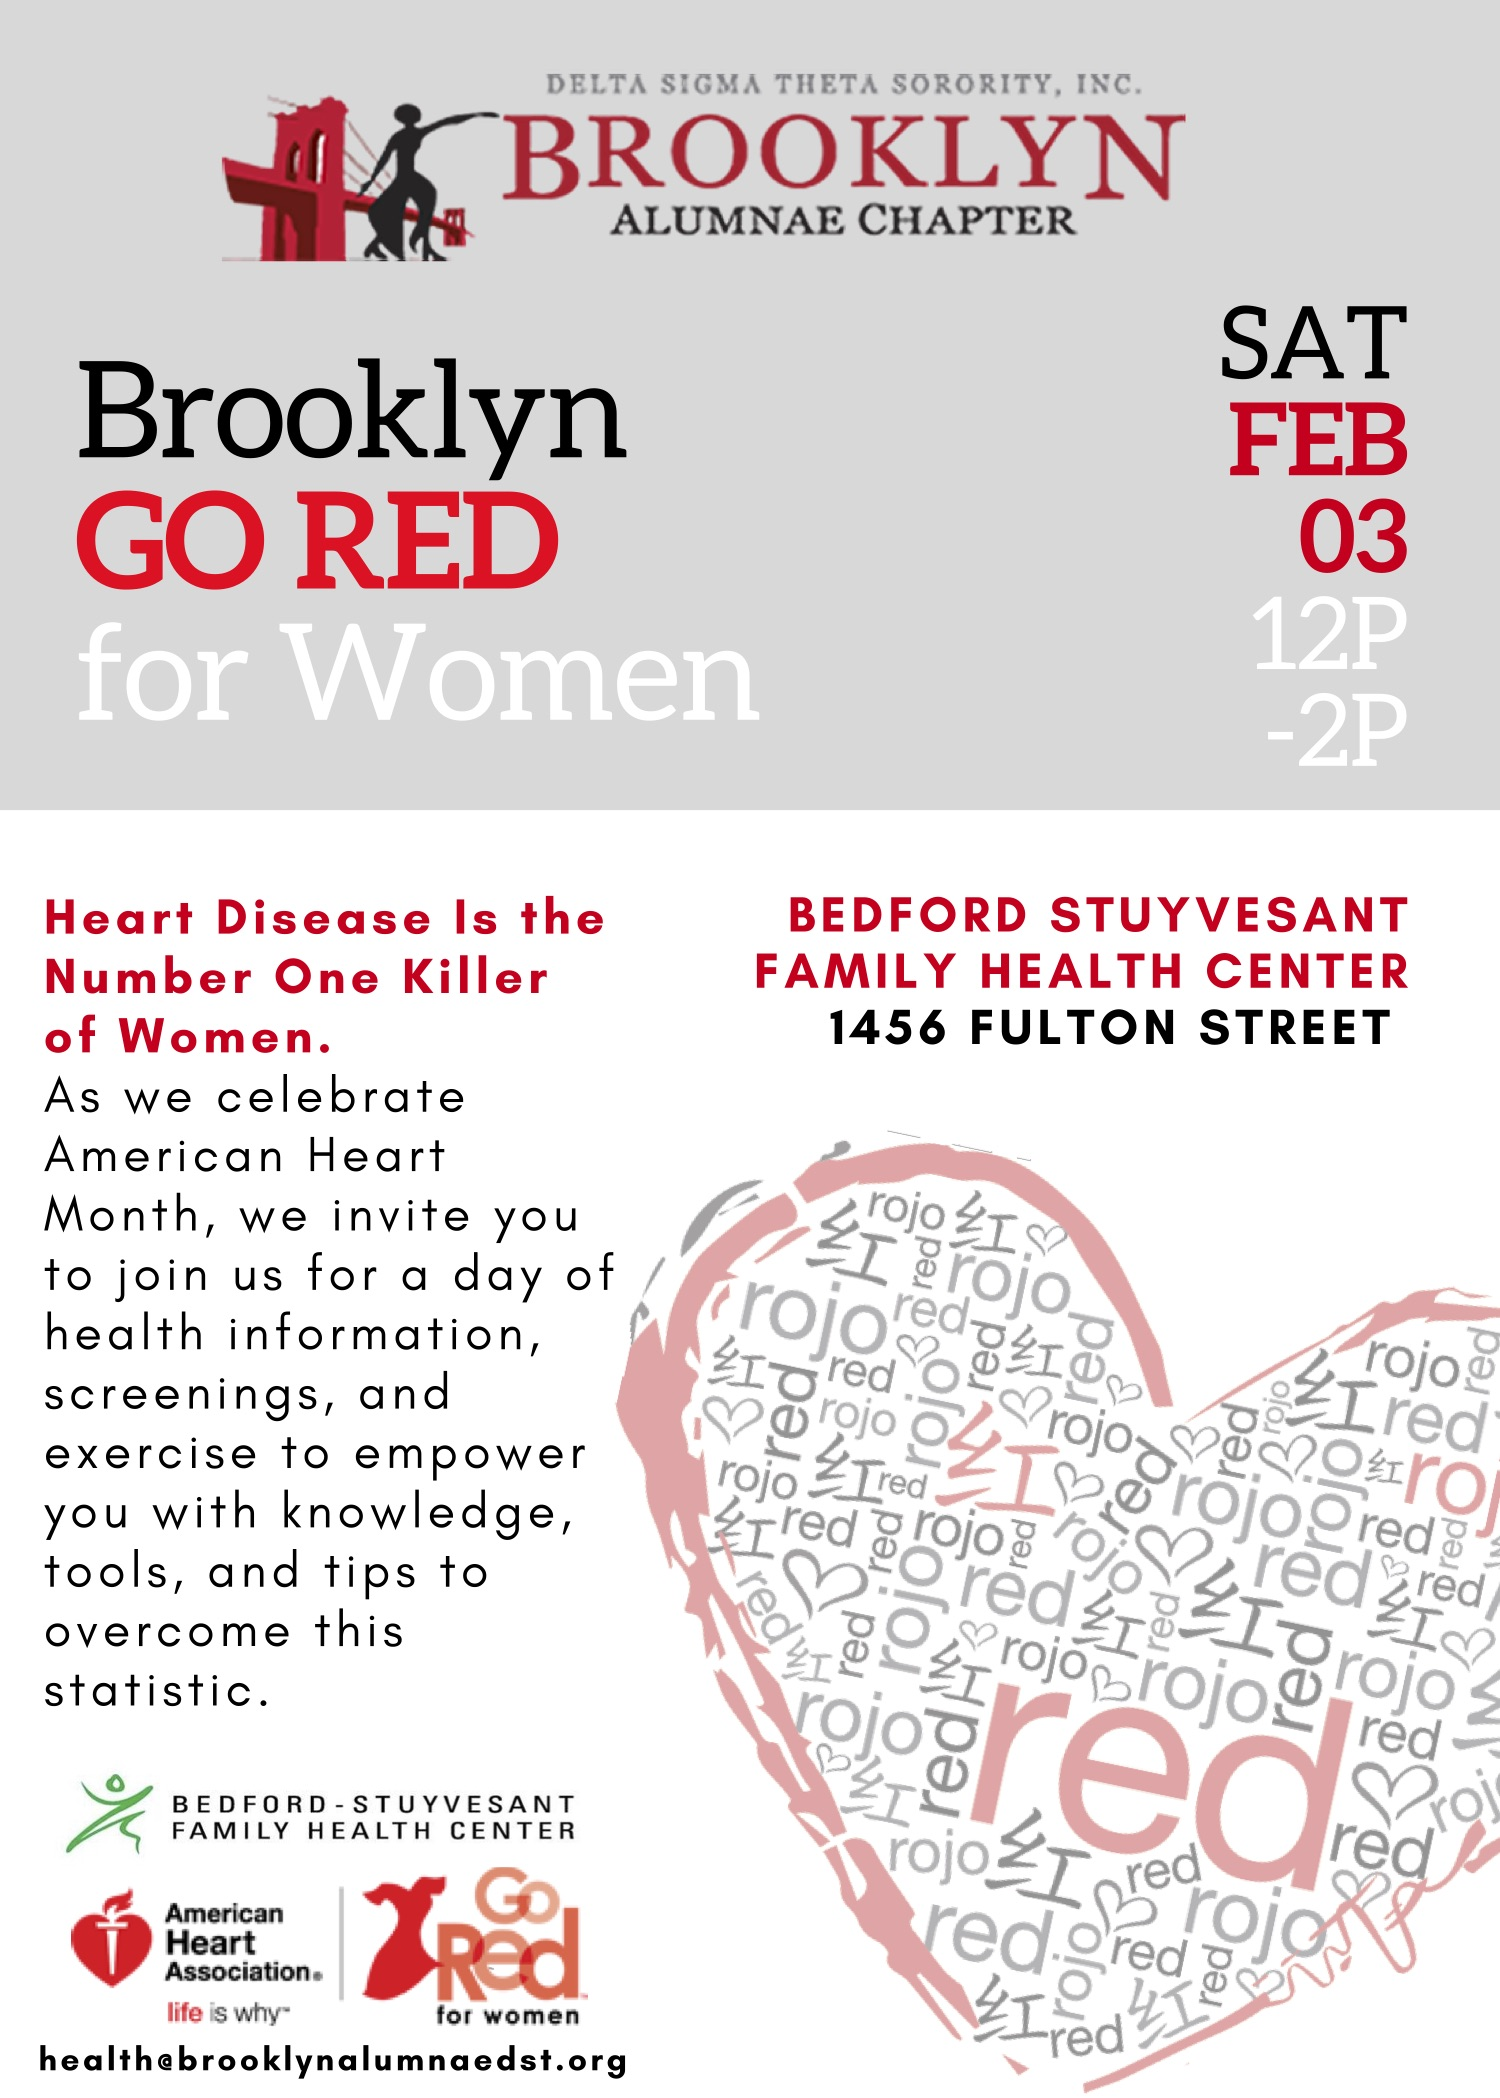 GO RED for Women — Brooklyn Alumnae Chapter, Delta Sigma Theta